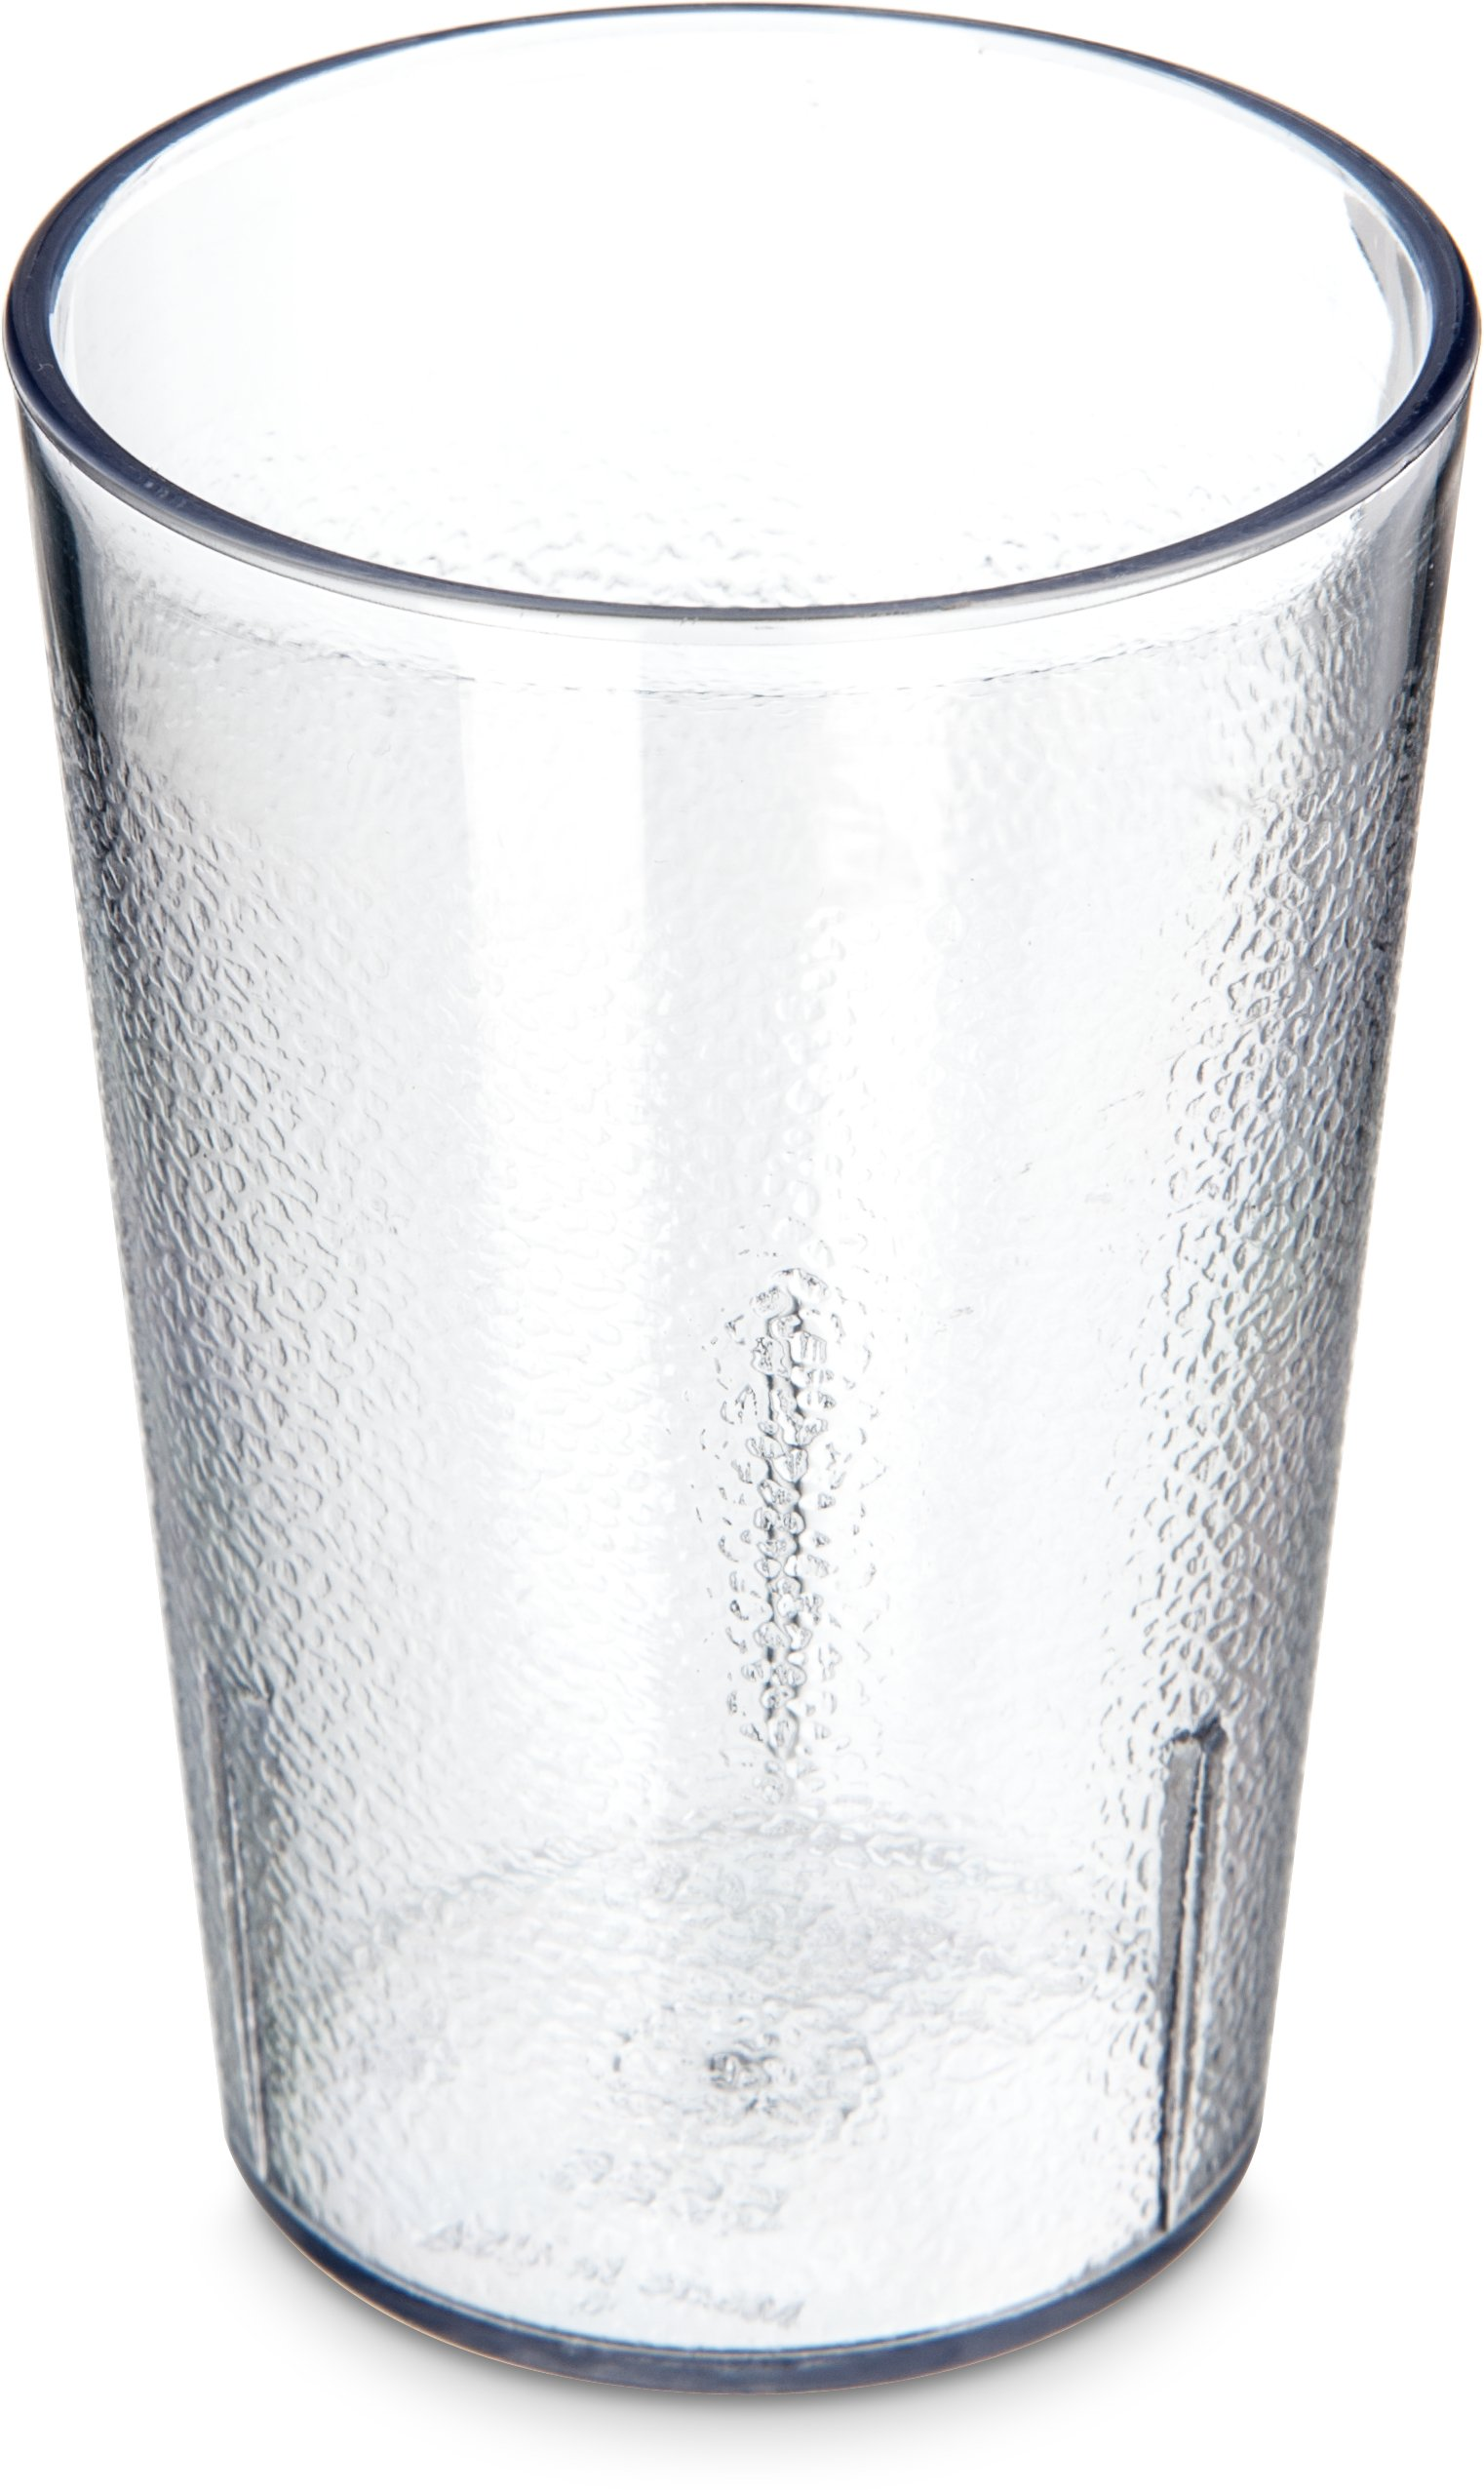 Carlisle 552607 BPA Free Stackable Shatter-Resistant Plastic Tumbler, 8 oz., Clear (Pack of 72) by Carlisle